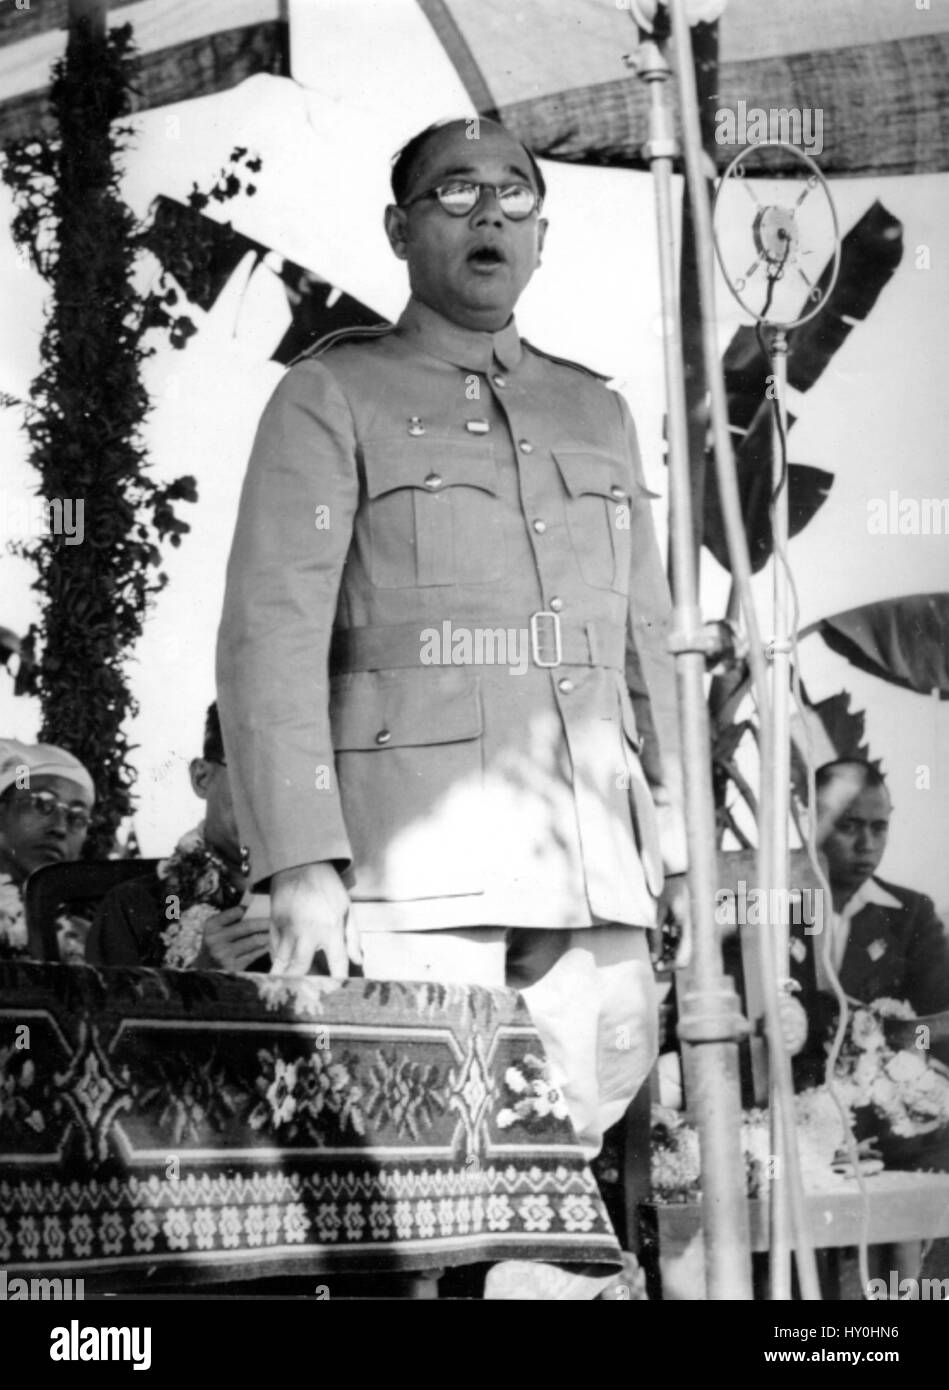 Indian freedom fighters, subhas chandra bose delivering speech, india, asia, 1943 - Stock Image